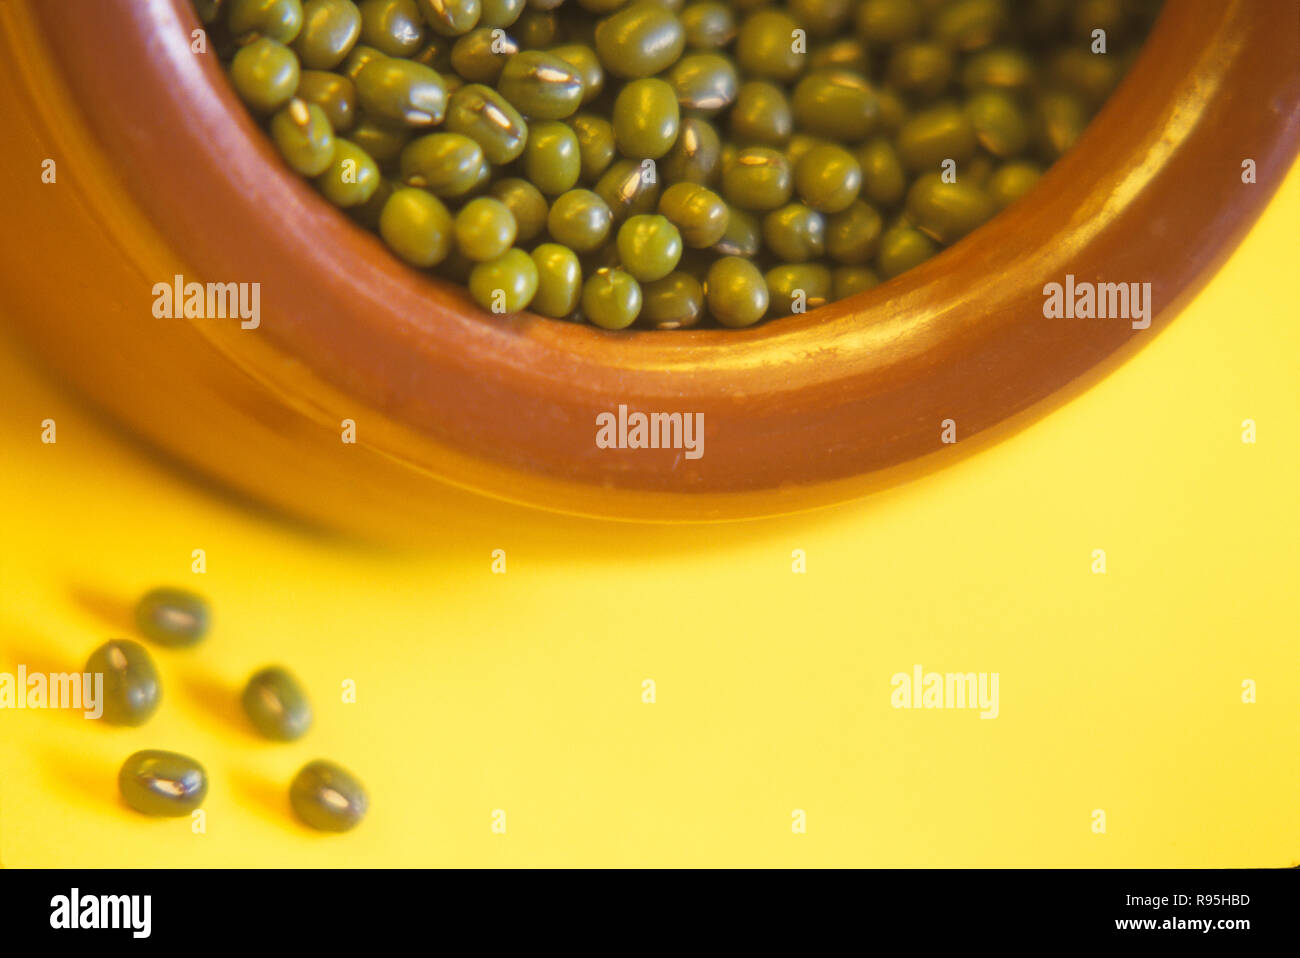 Beans, Sprouted Pulse Mung (Moong daal), India - Stock Image